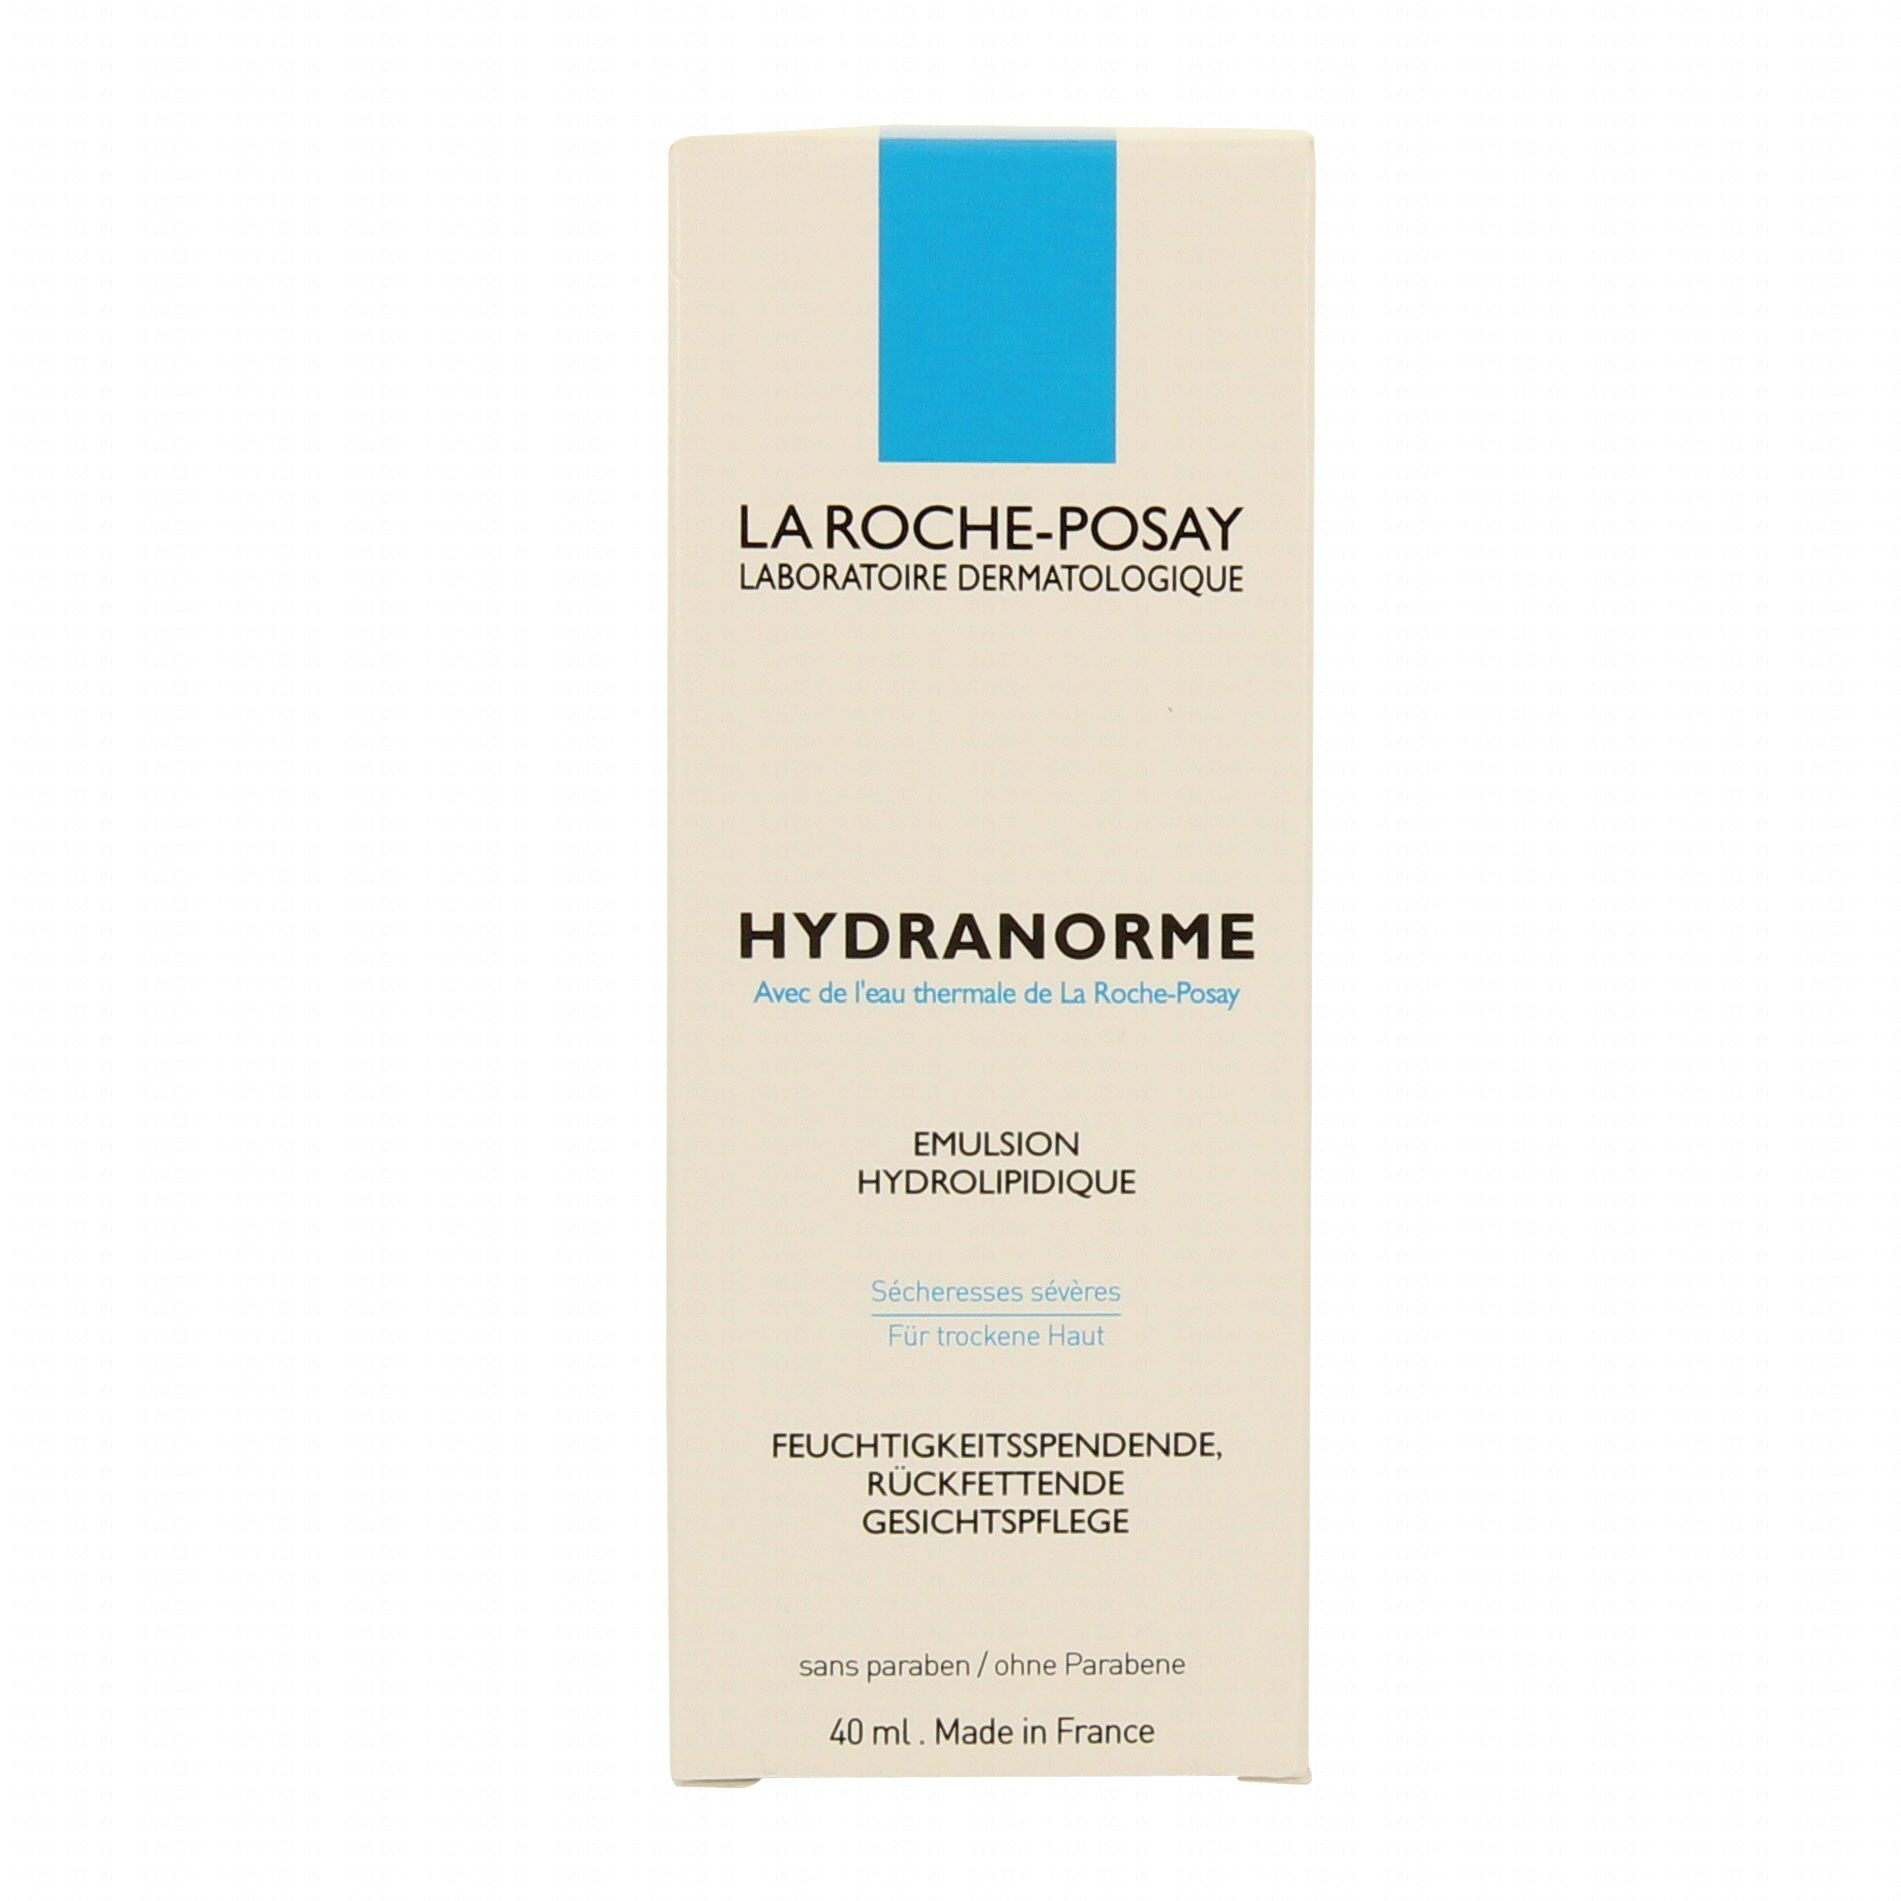 la roche posay hydranorme tube 40ml la roche posay parapharmacie en ligne prado mermoz. Black Bedroom Furniture Sets. Home Design Ideas